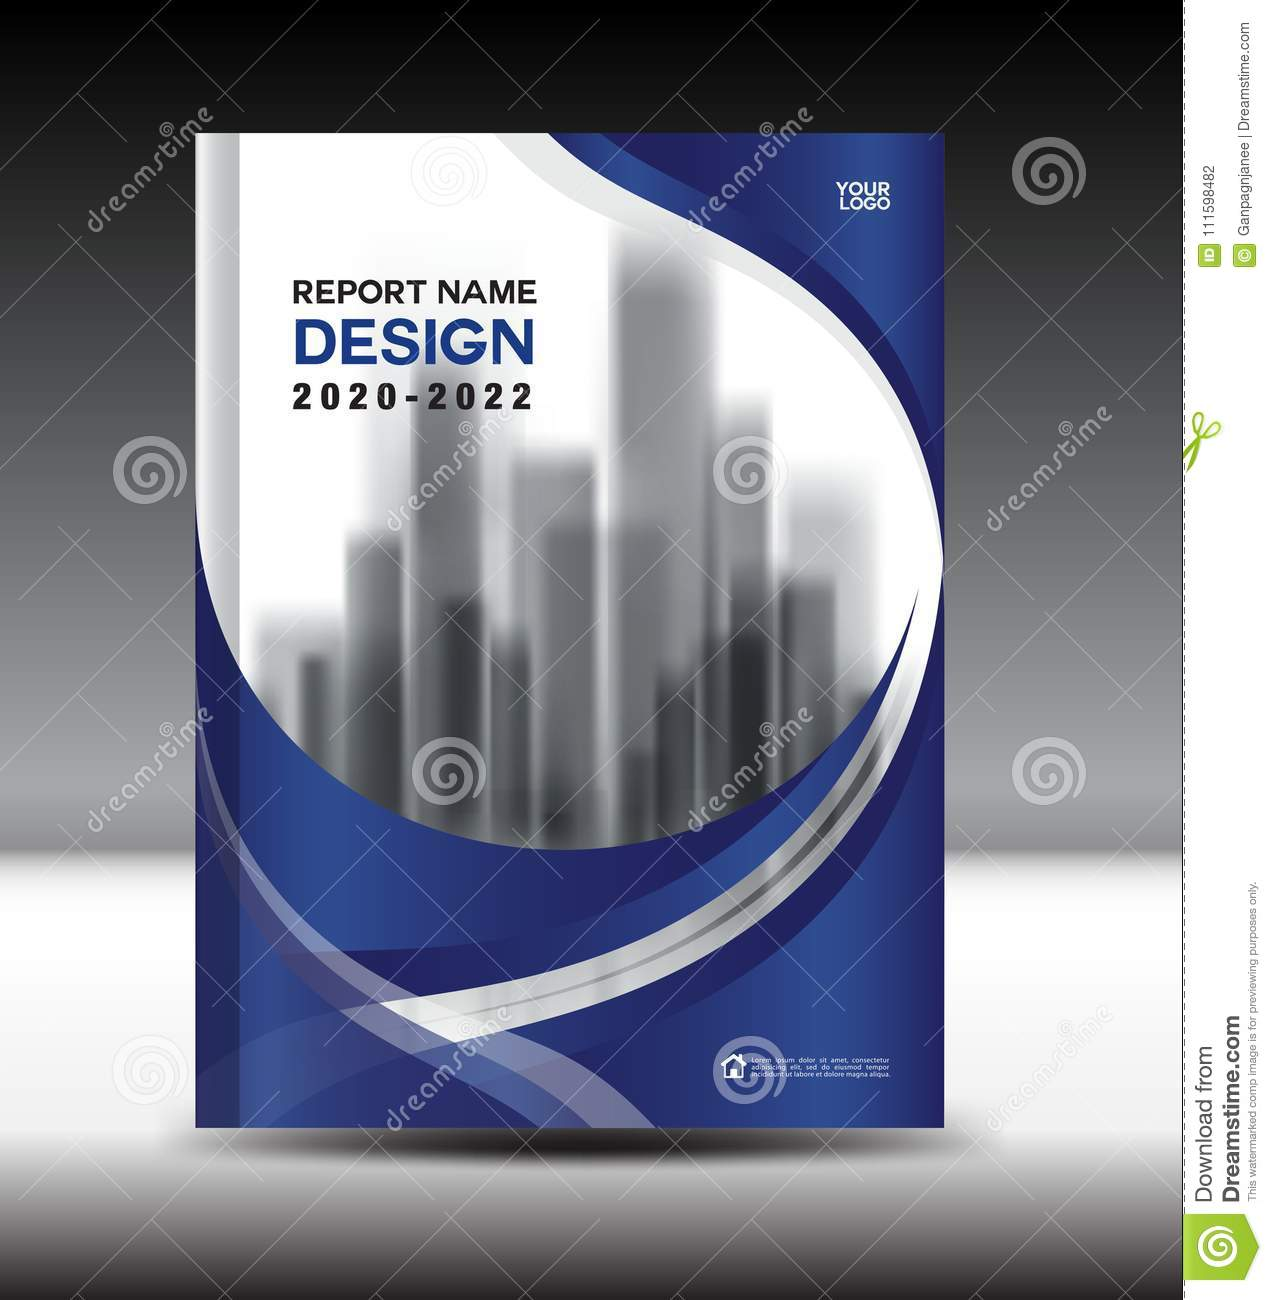 Annual report brochure flyer template, Blue cover design, book cover